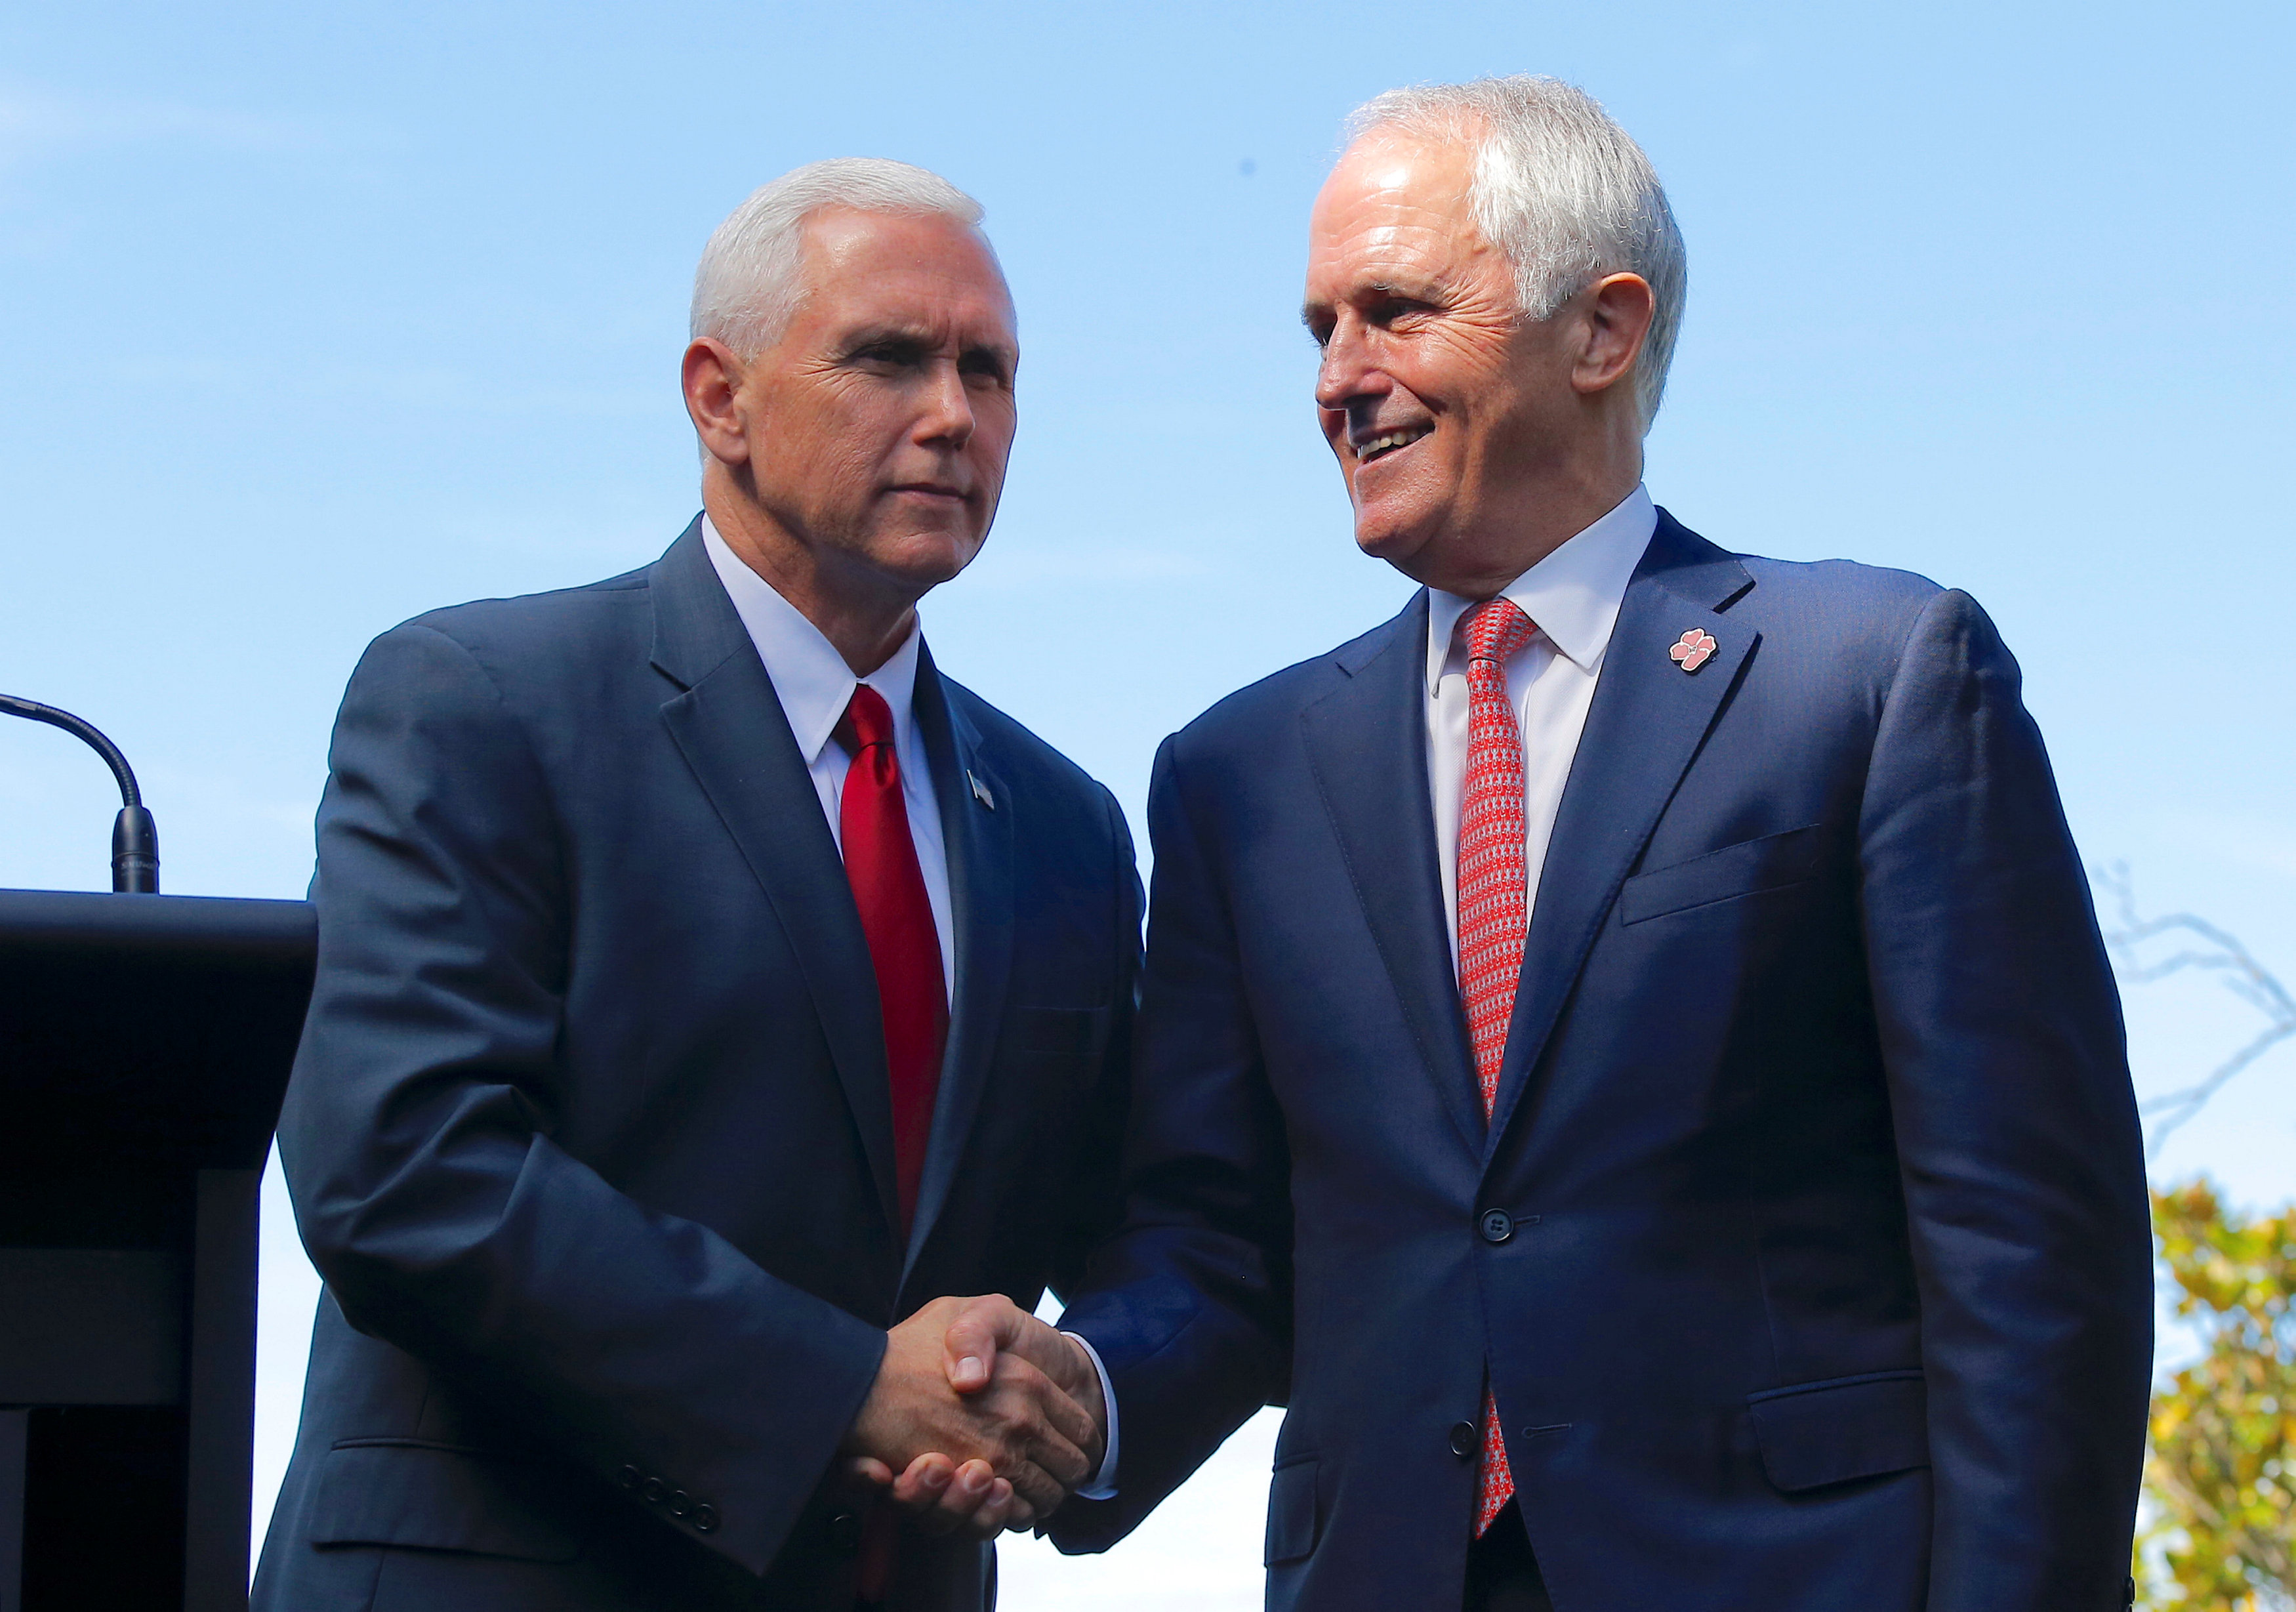 U.S. Vice President Mike Pence (L) shakes hands with Australia's Prime Minister Malcolm Turnbull after a media conference at Admiralty House in Sydney, Australia, April 22, 2017. REUTERS/Jason Reed